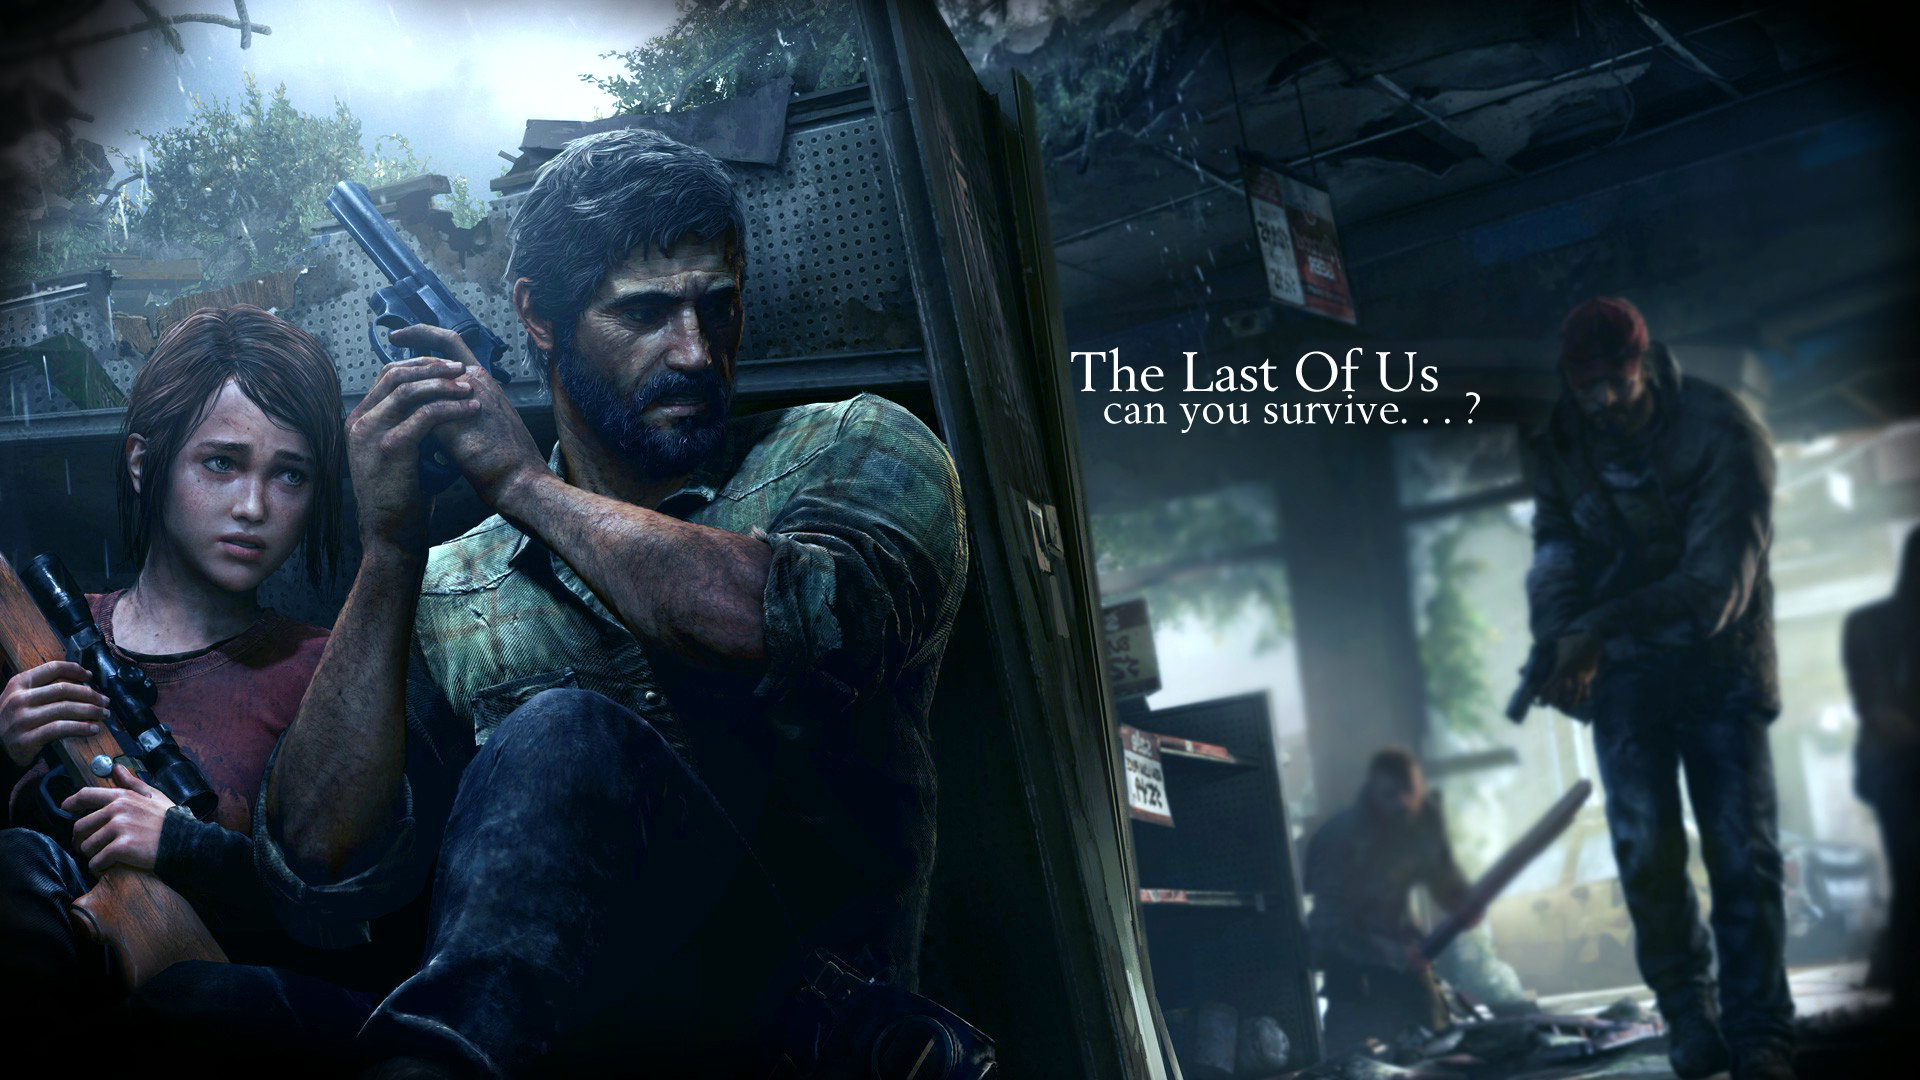 The Last Of Us Wallpaper Hd Hd Wallpapers 4k Pc The Last Of Us 1920x1080 Download Hd Wallpaper Wallpapertip